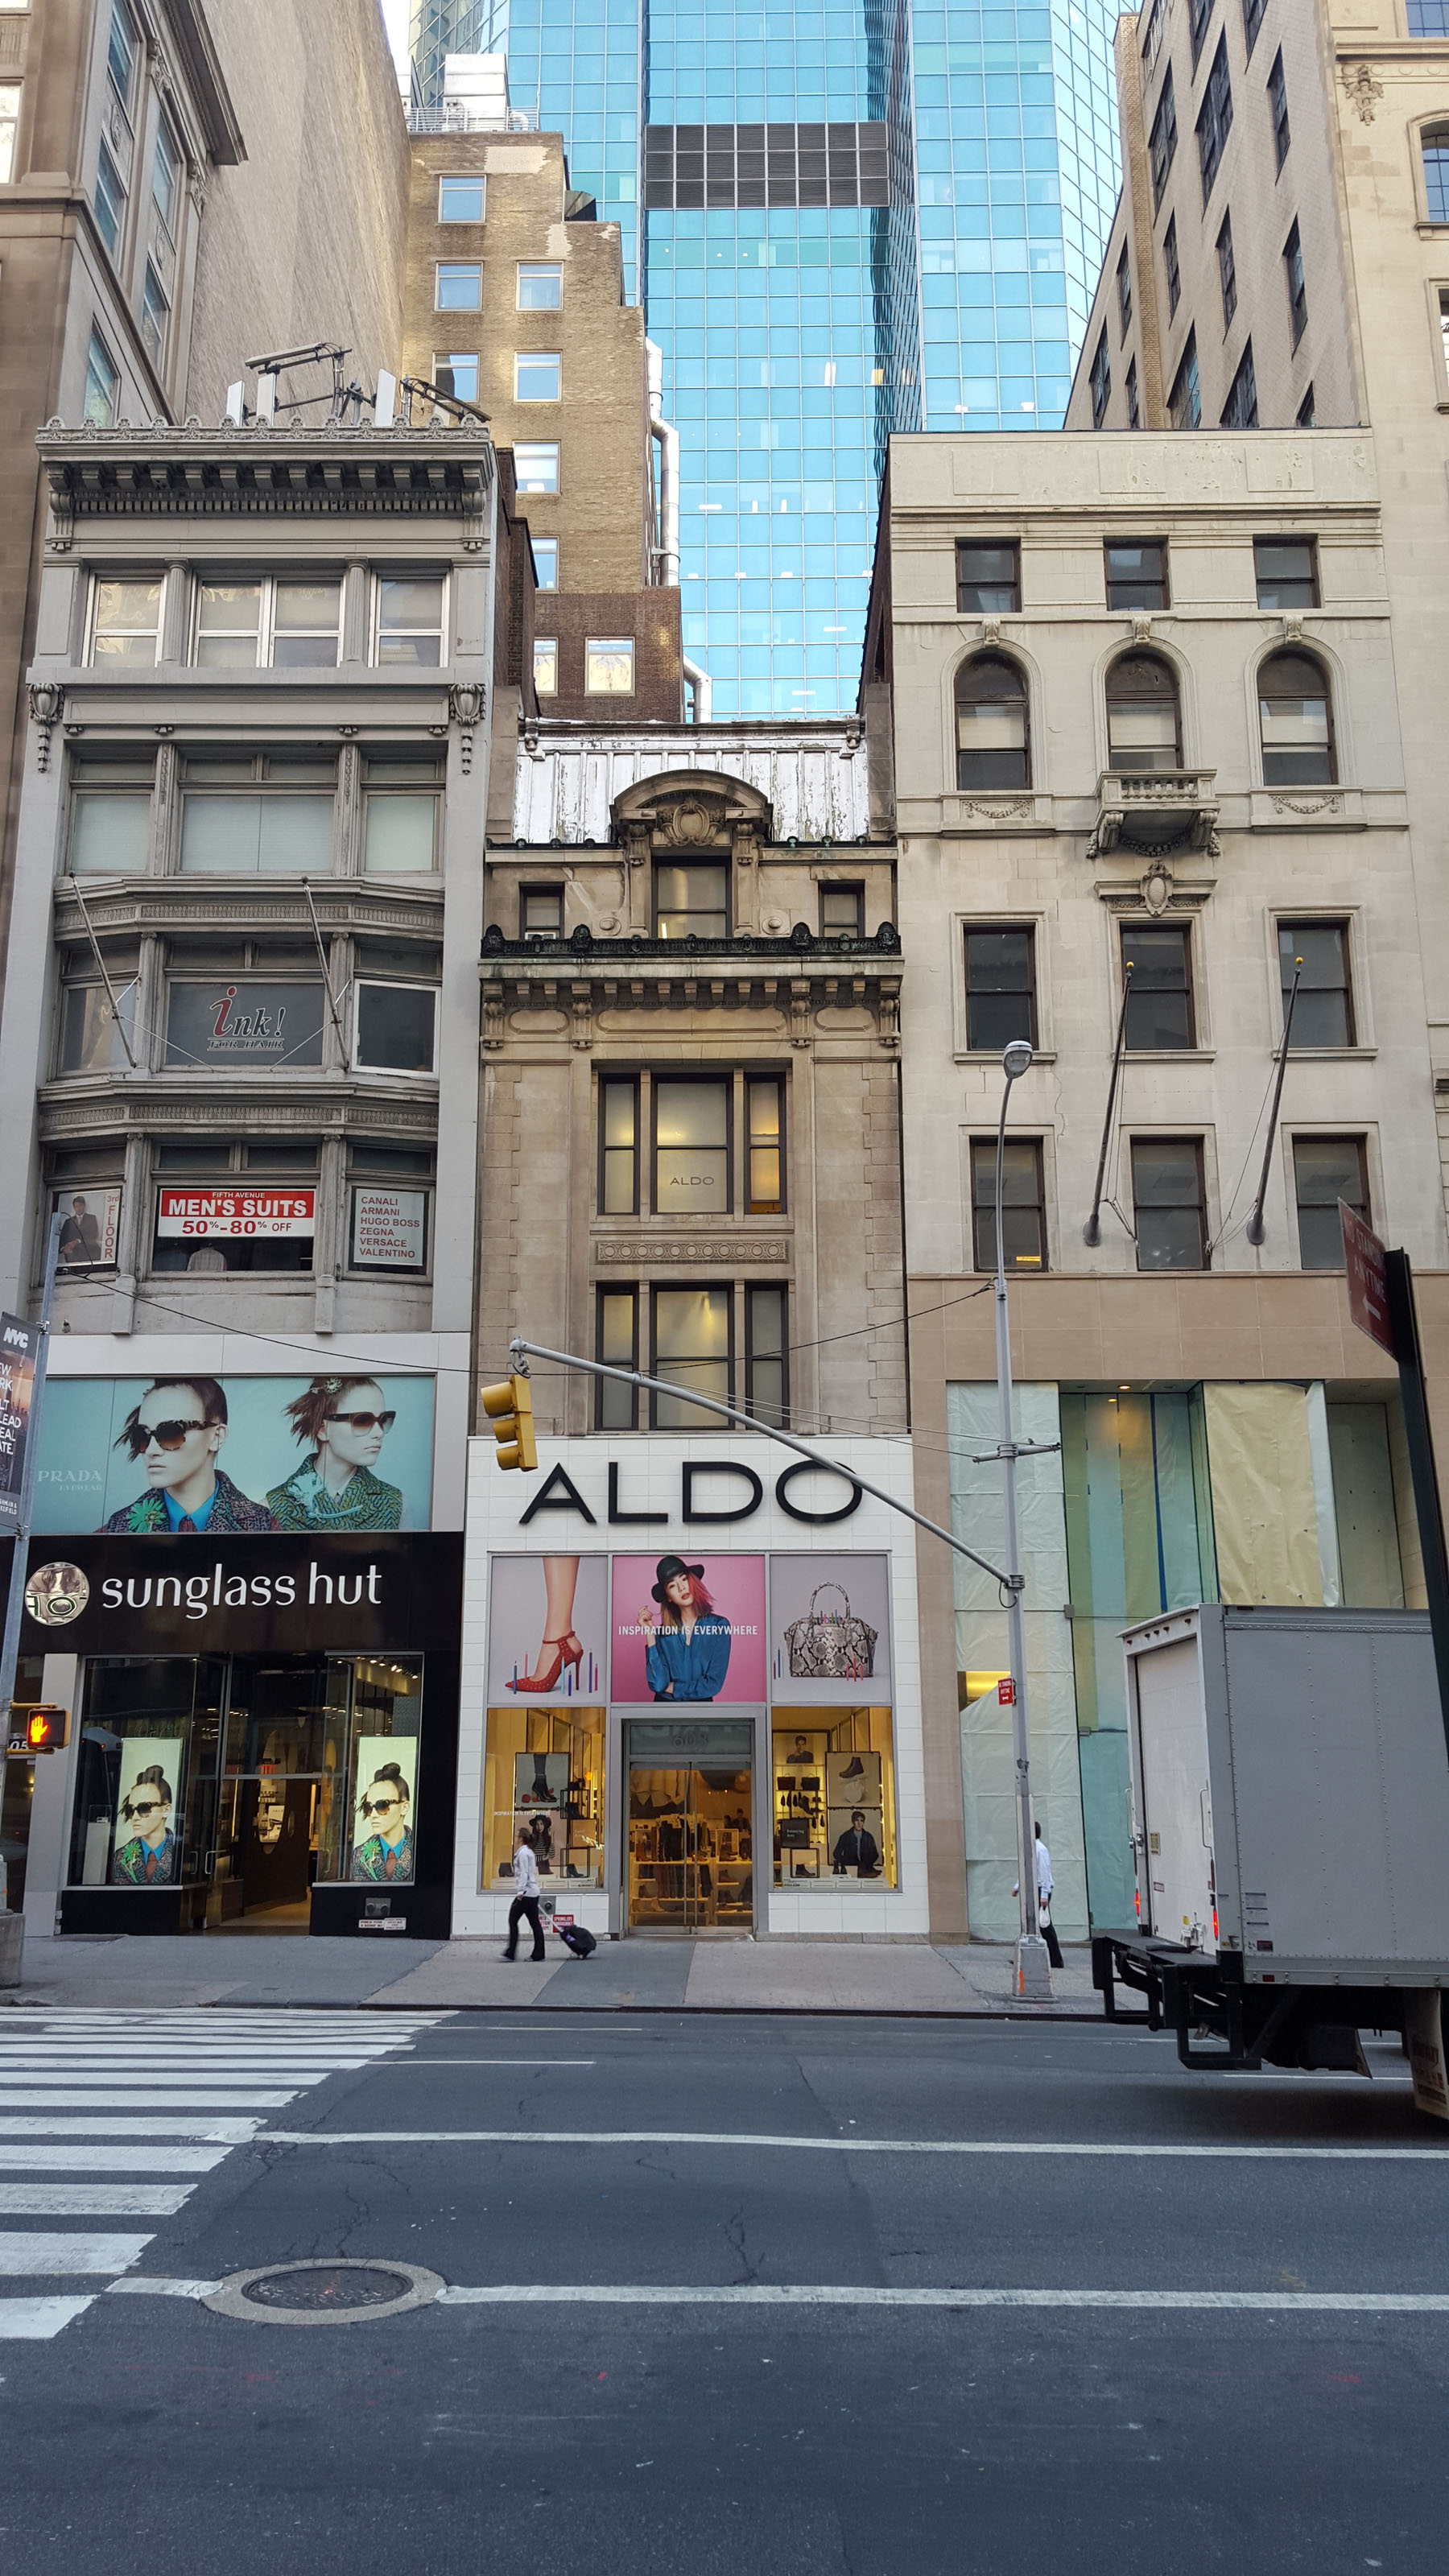 601 & 603 & 605 Fifth Avenue